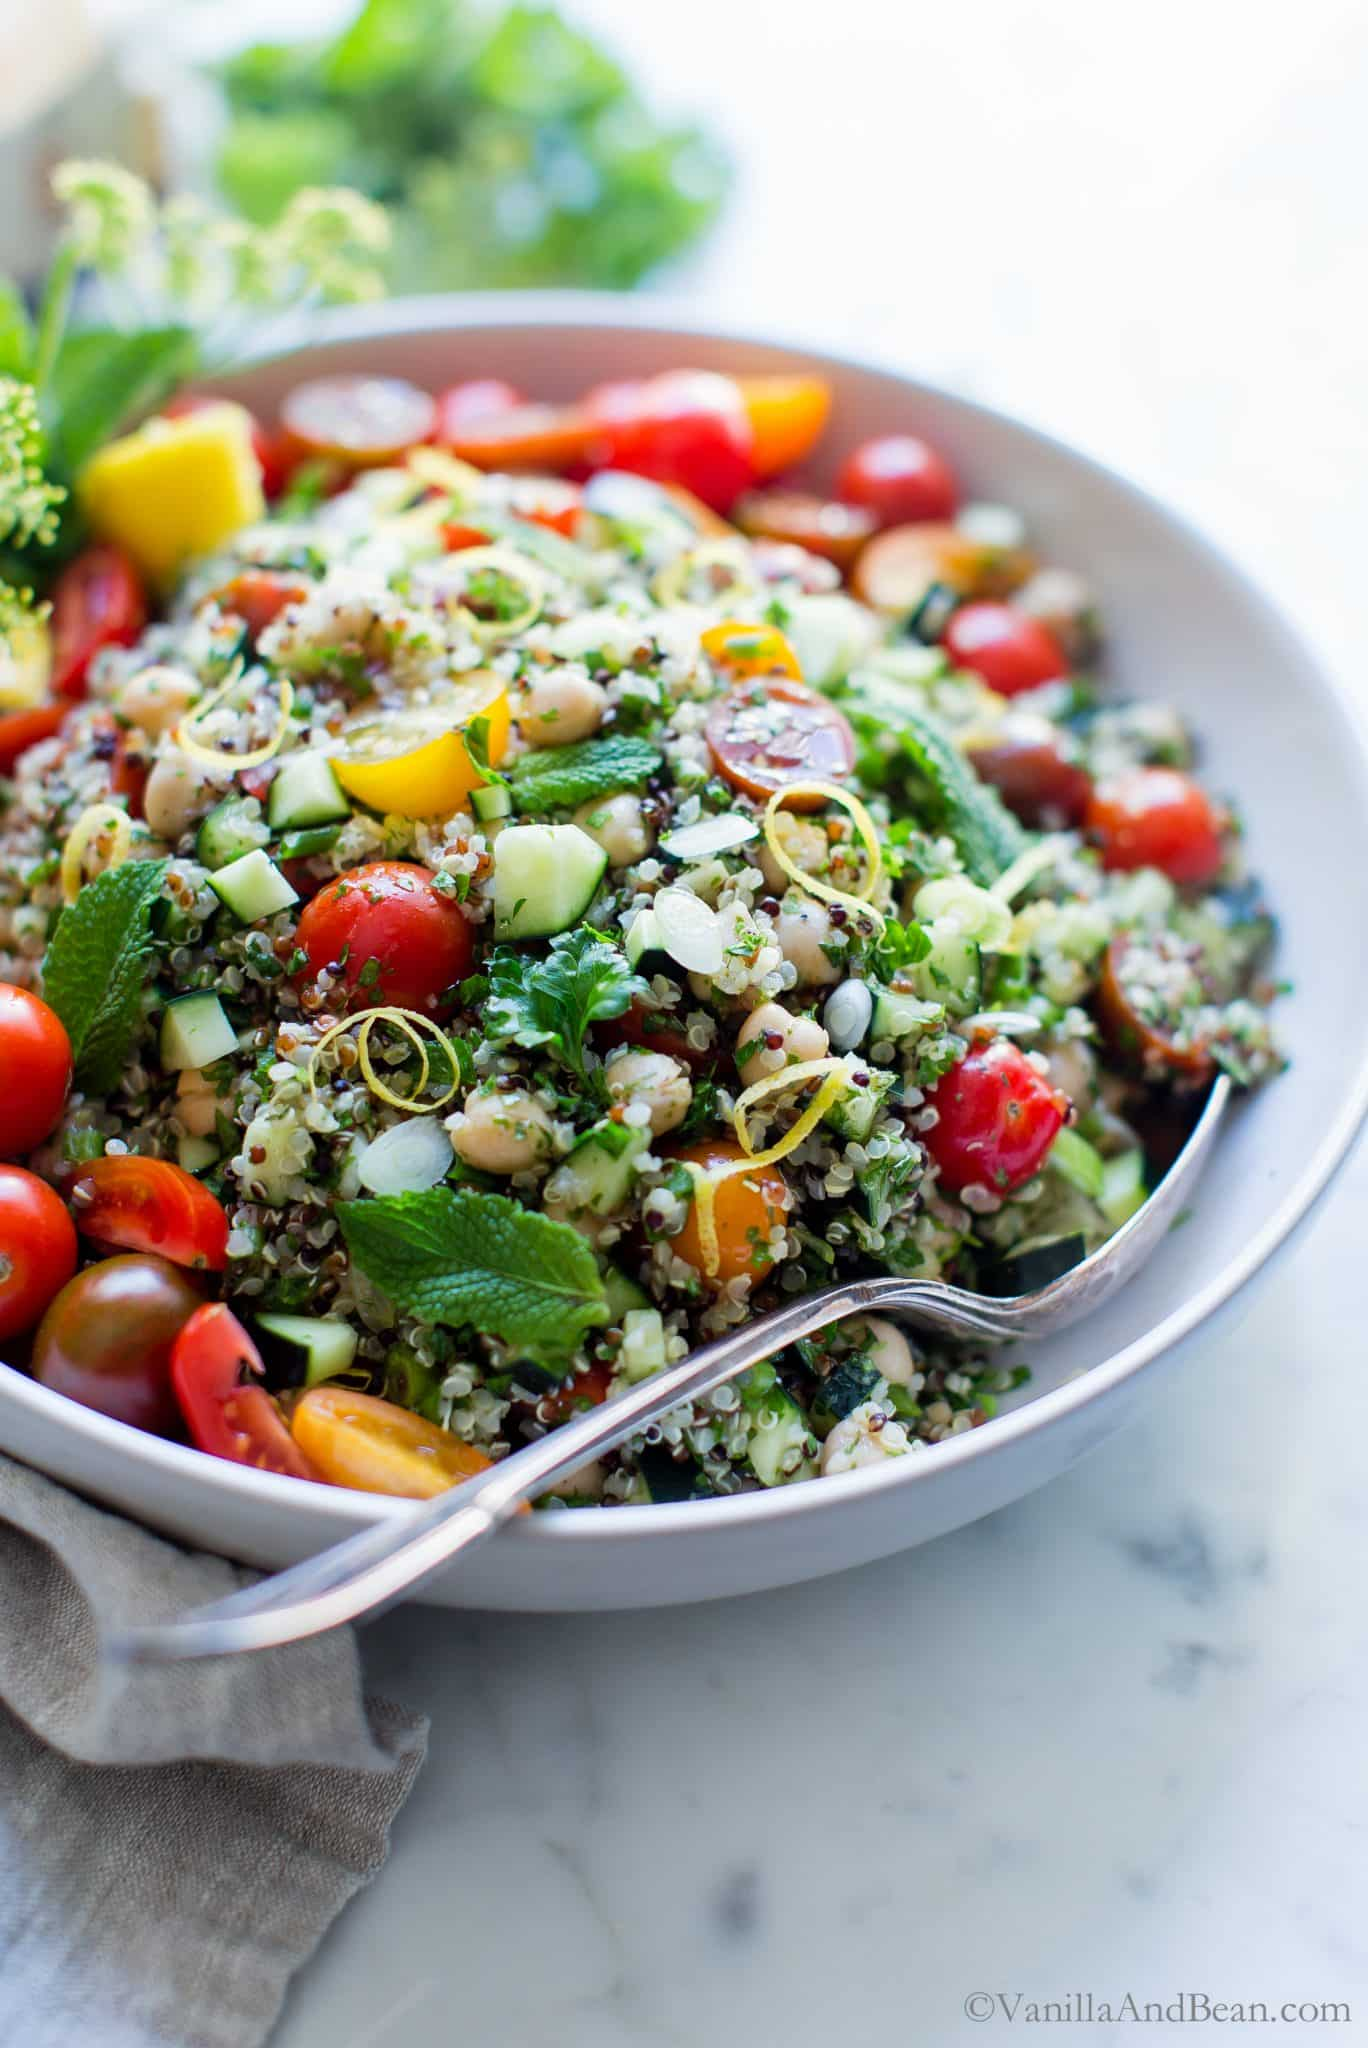 Quinoa Tabbouleh Salad with Chickpeas